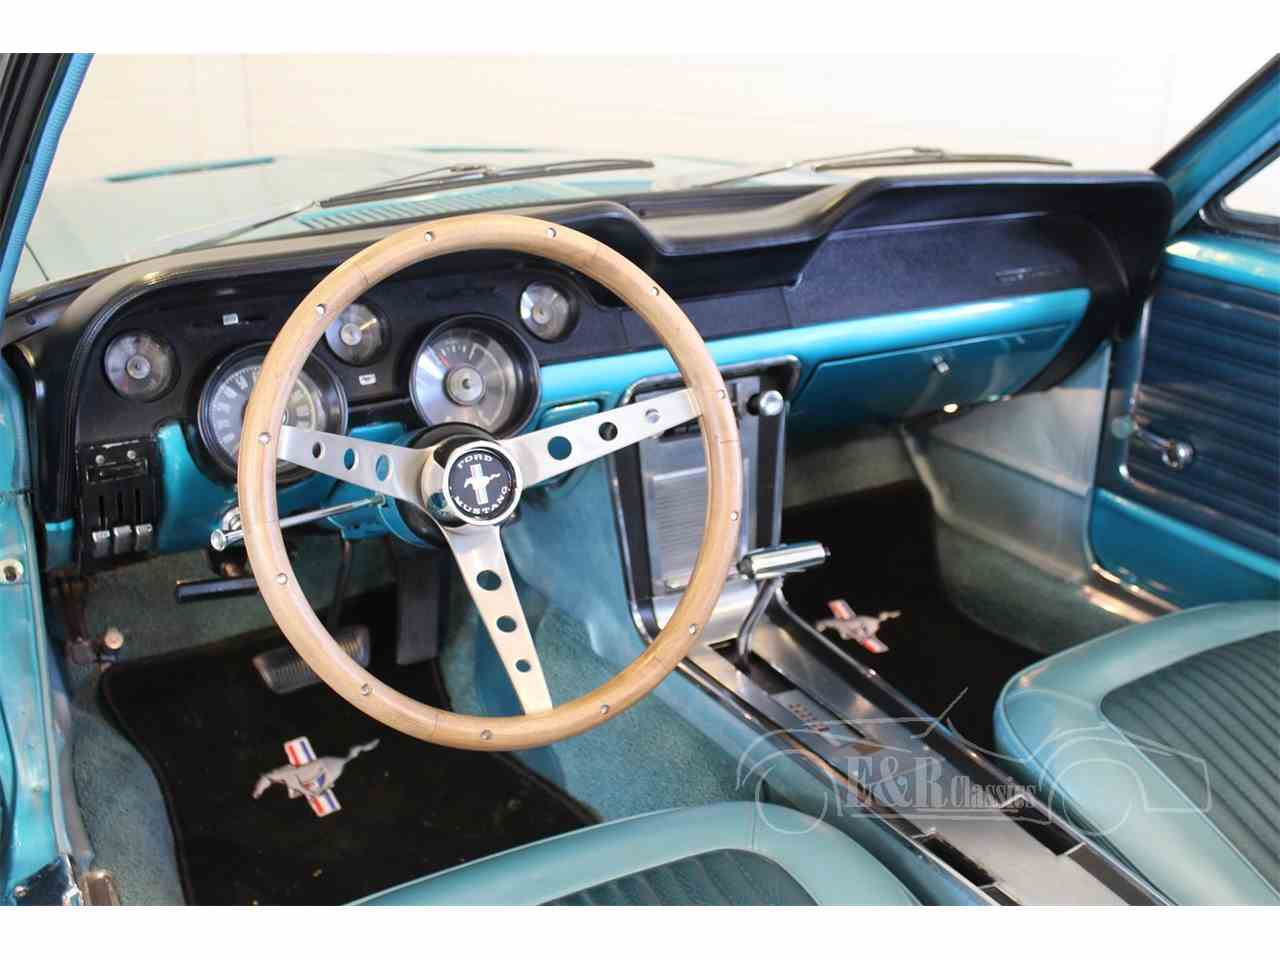 Large Picture of 1968 Ford Mustang - $46,500.00 Offered by E & R Classics - M9HP